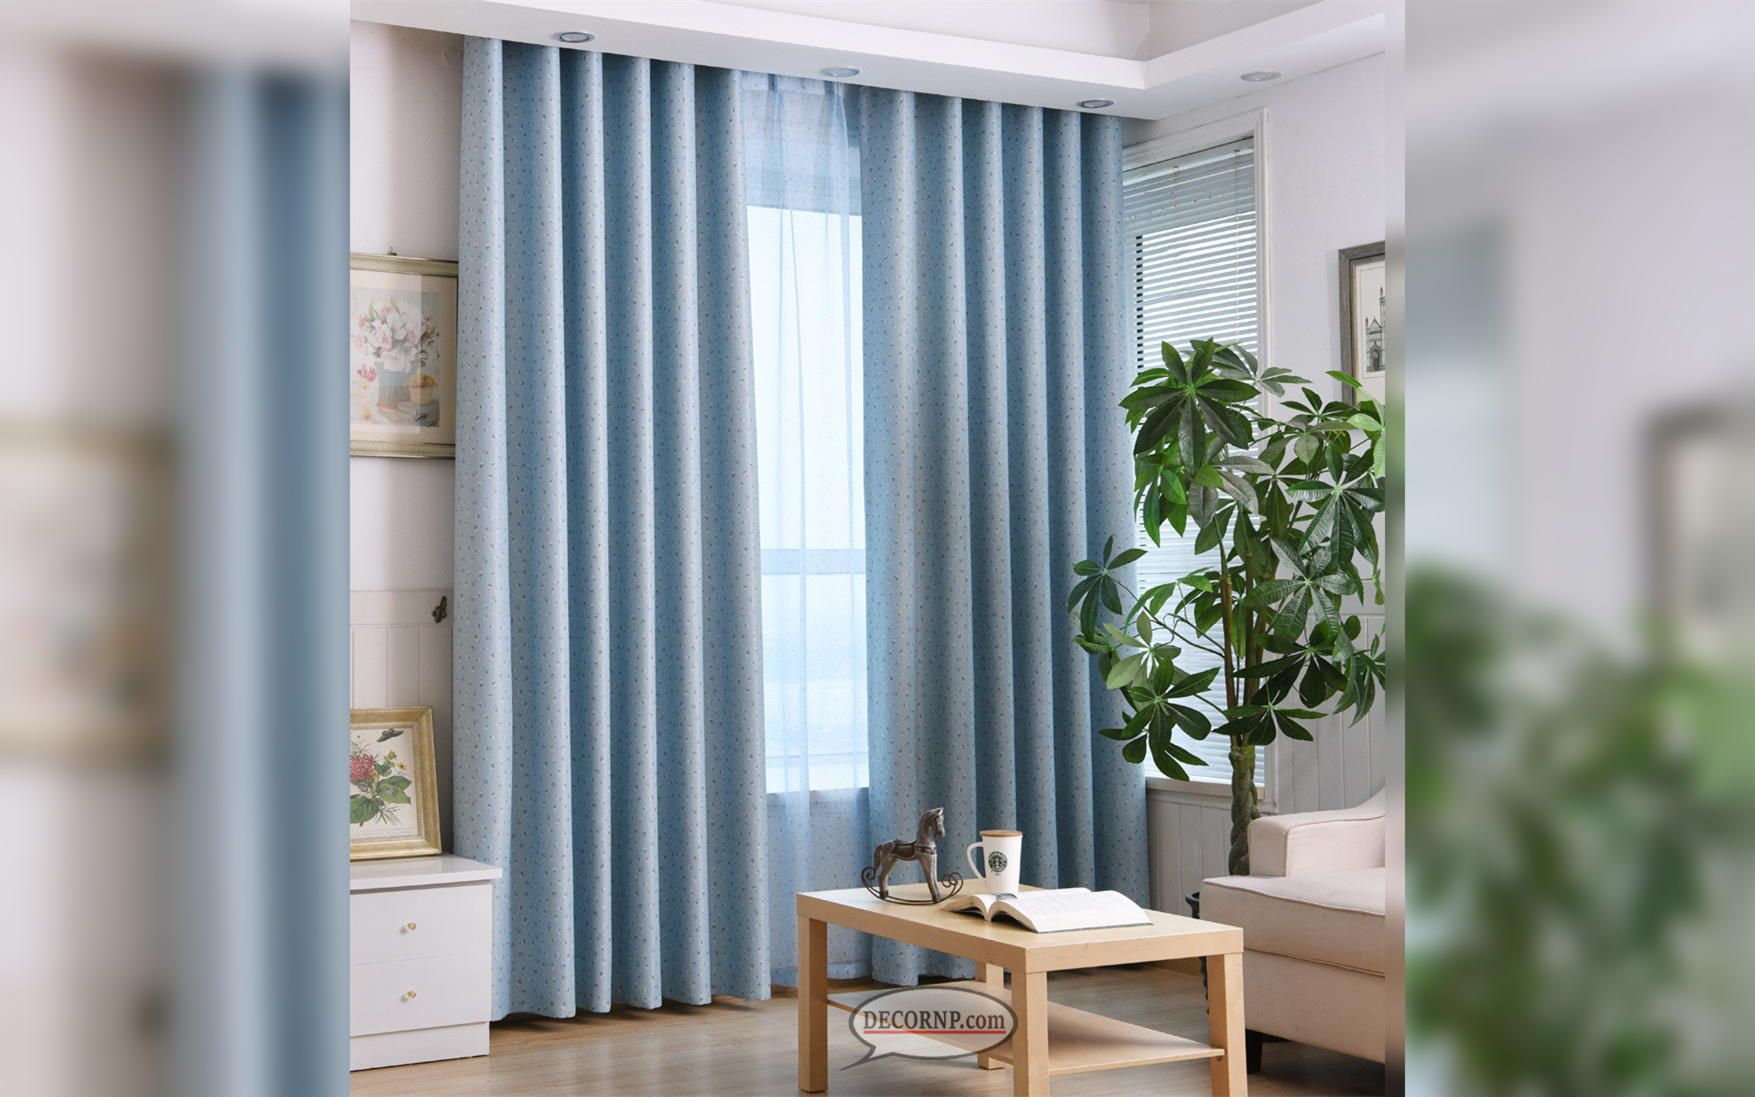 Best Home Decoration Design Ideas For You In 2020 Modern Curtains Curtain Designs Home Decor